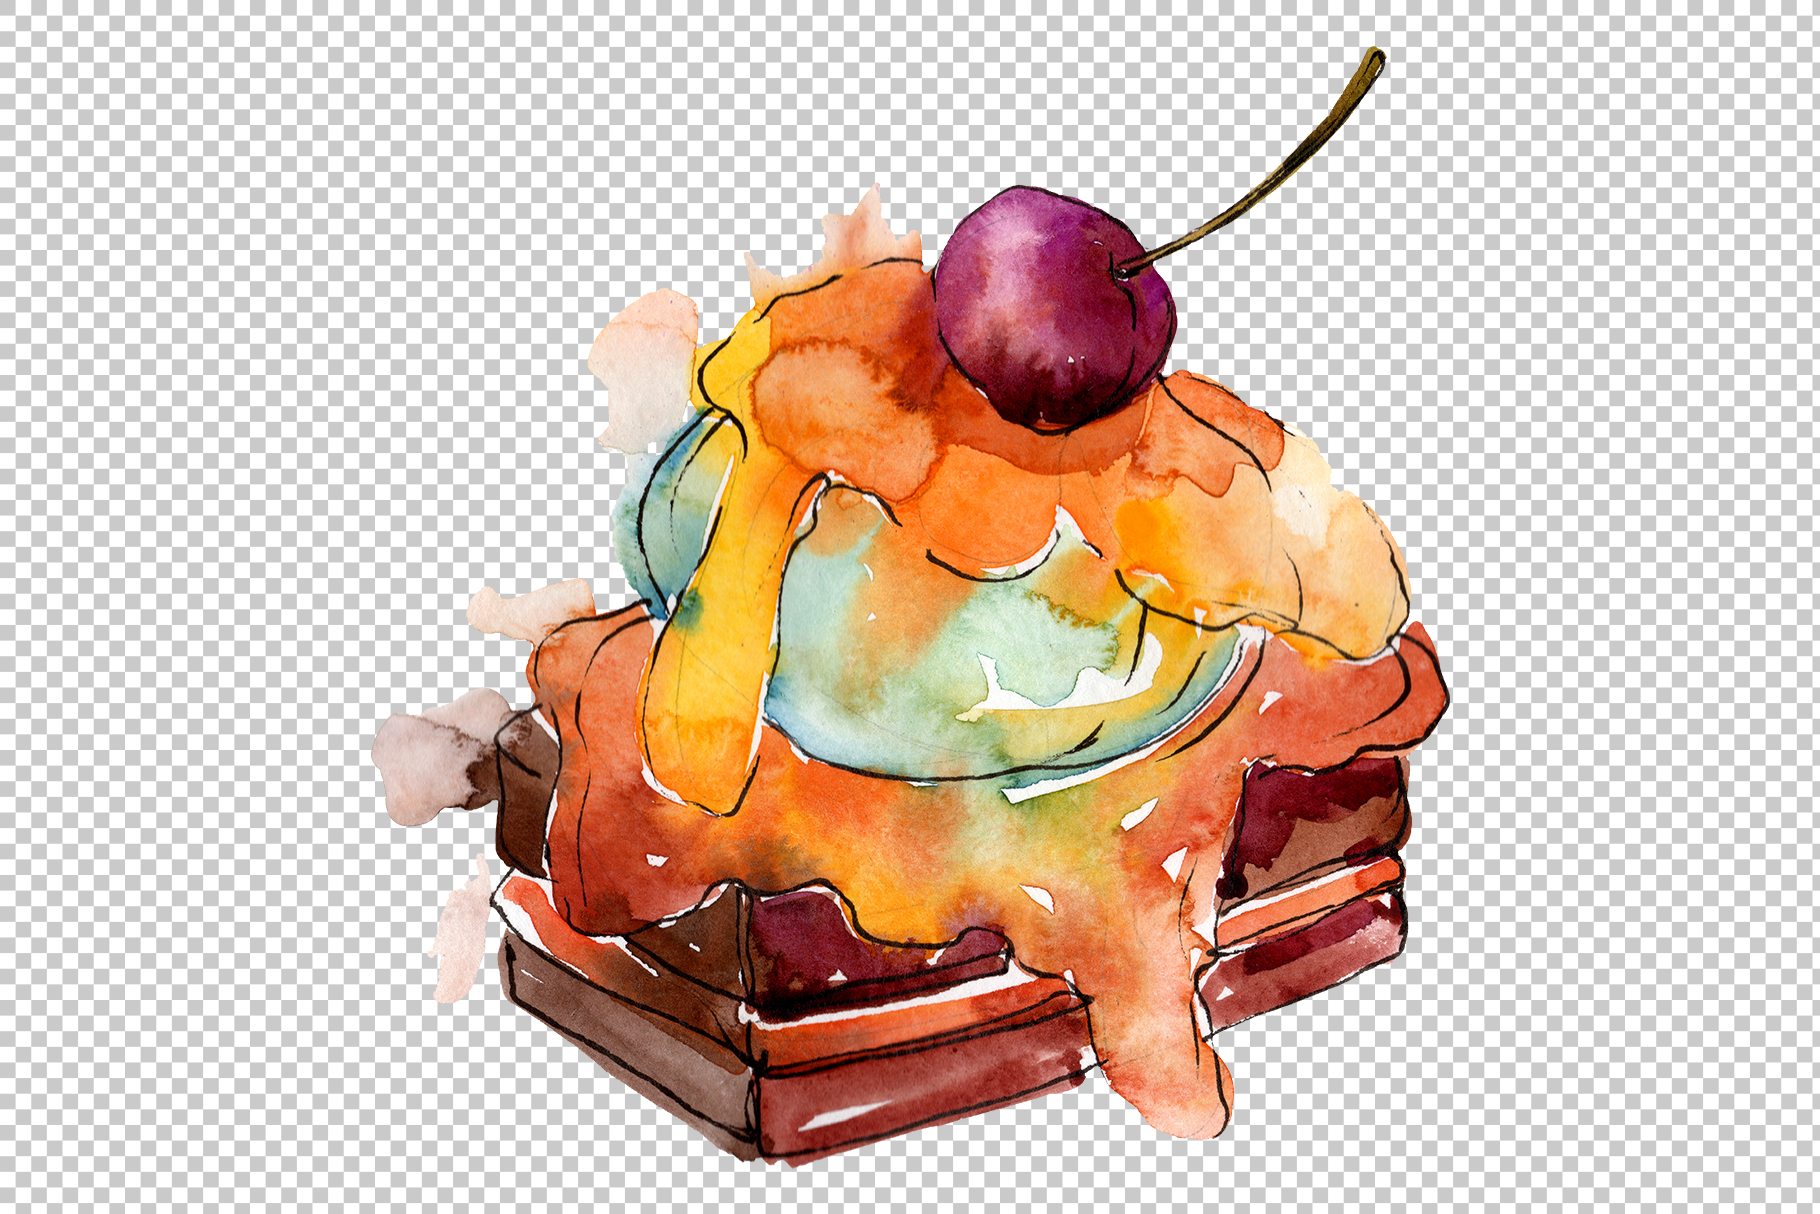 Dessert Appetizing Watercolor png example image 2